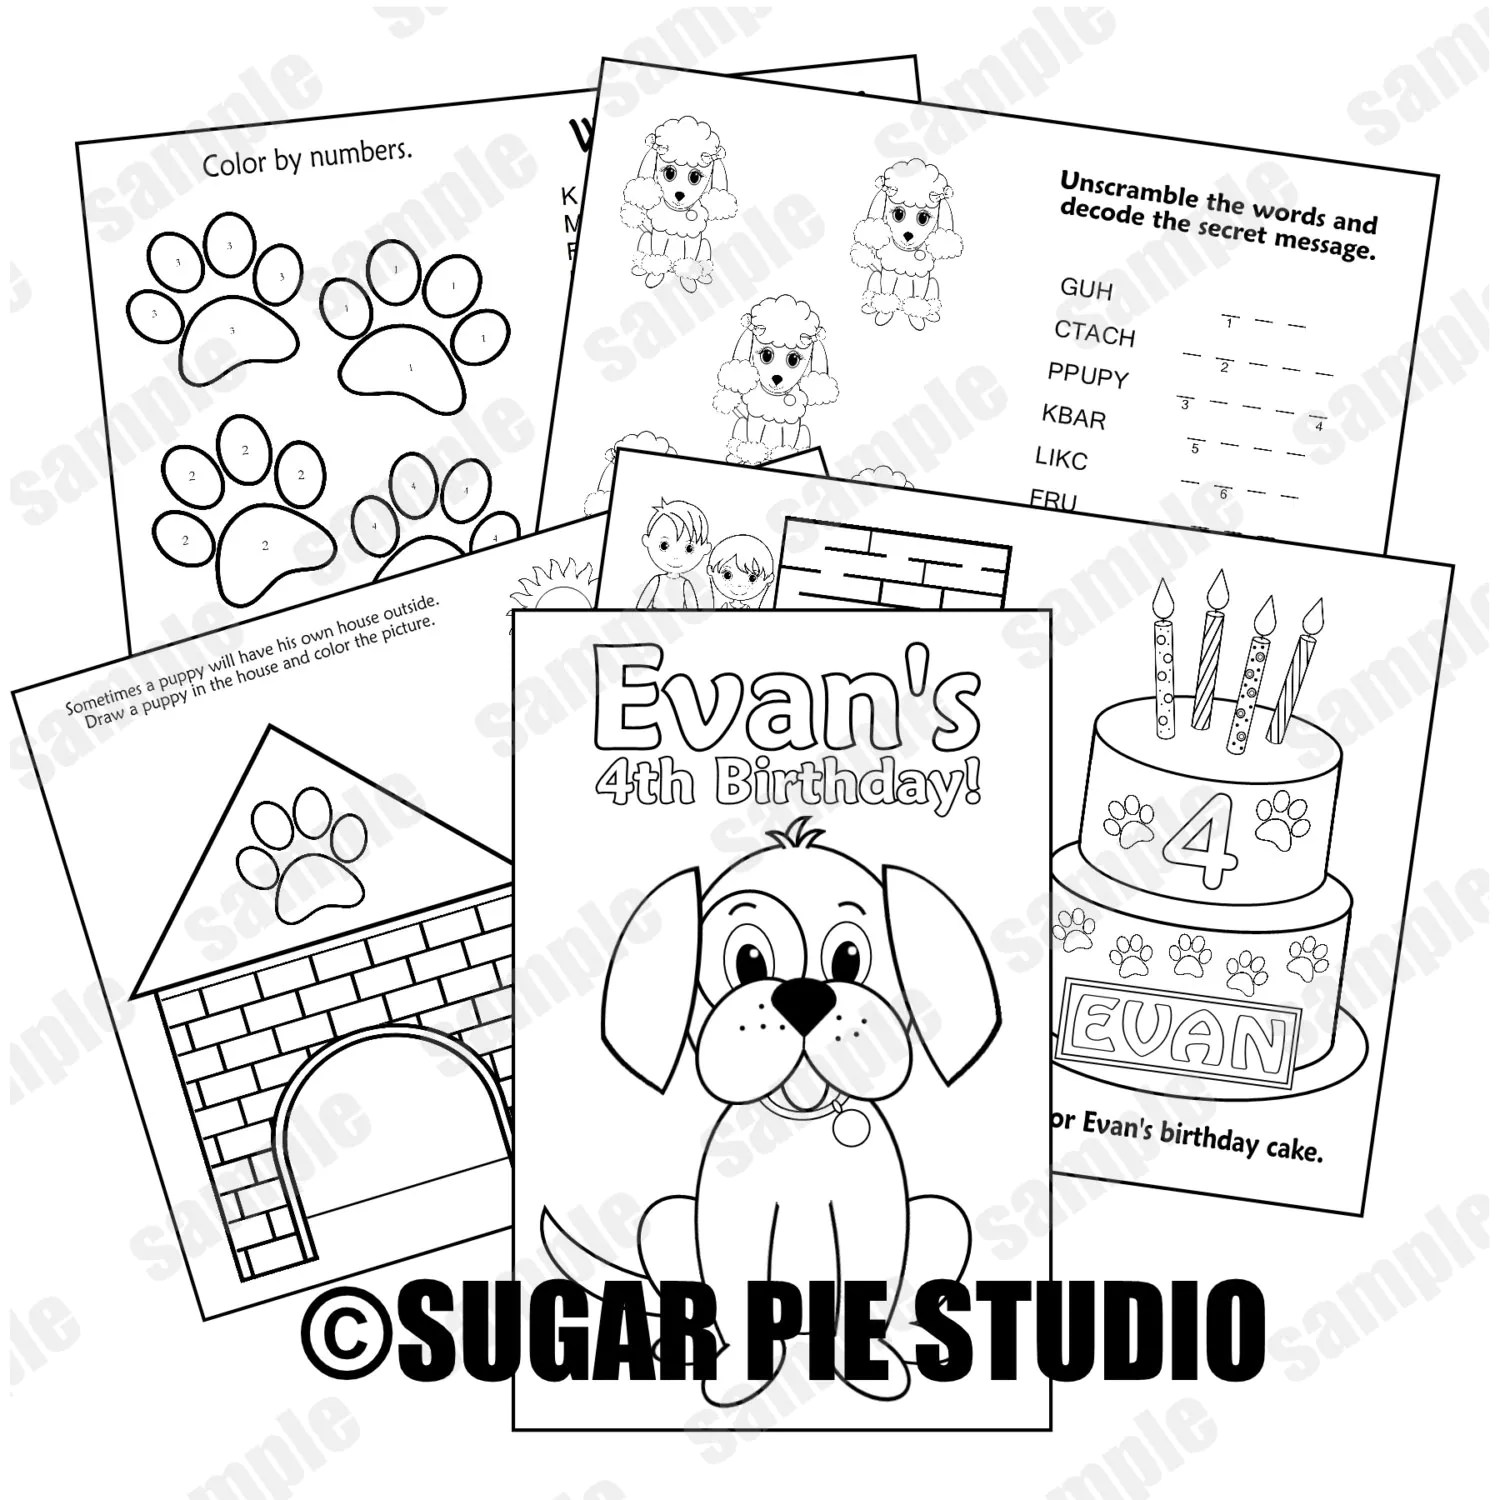 Puppy dog coloring book Printable Personalized Puppy dog